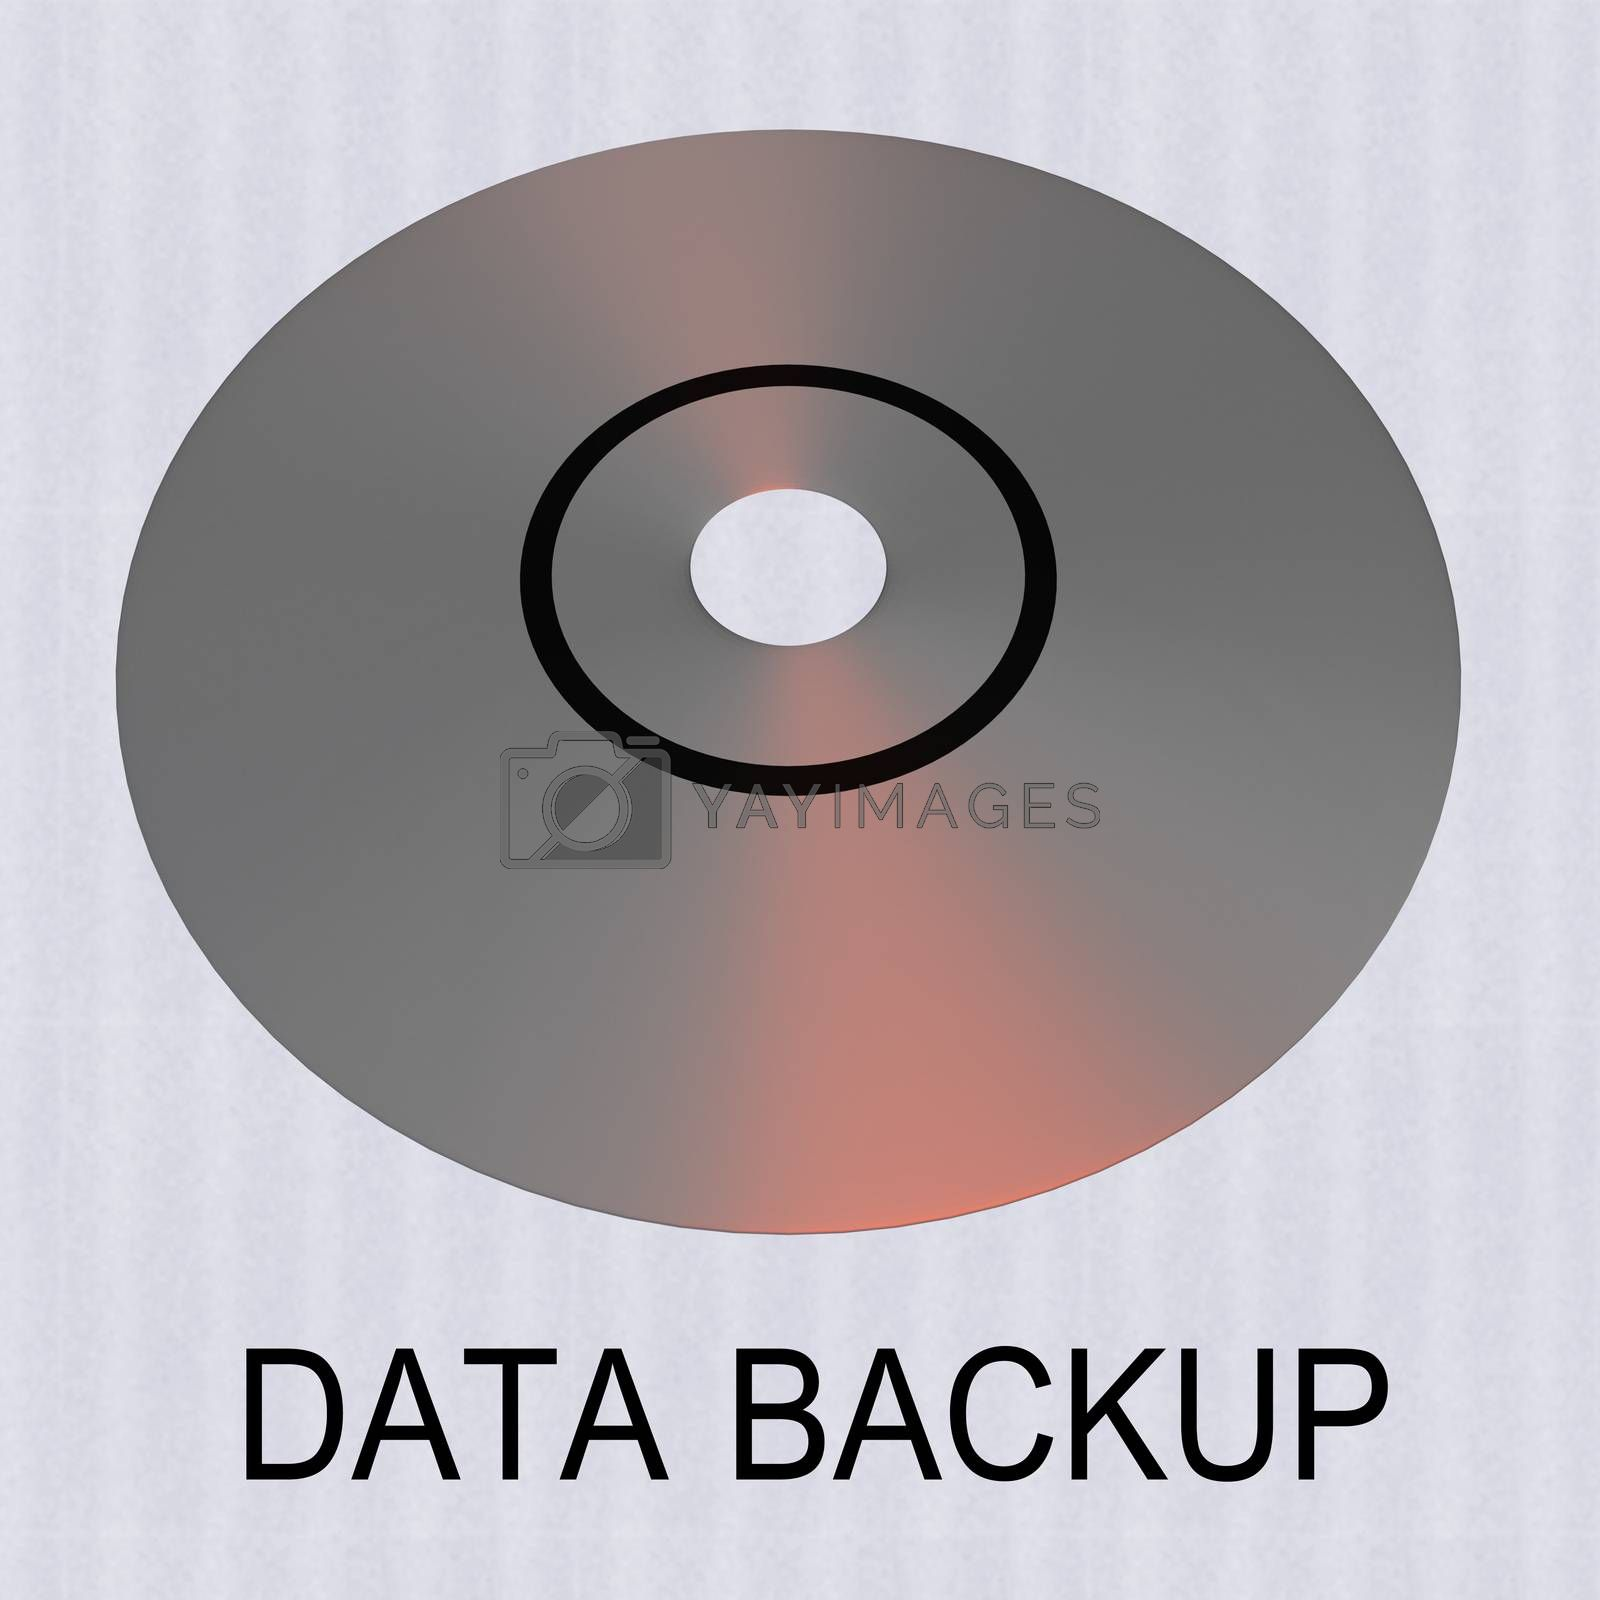 3D illustration of a compact disk with text DATA BACKUP, isolated over a pale blue pattern.